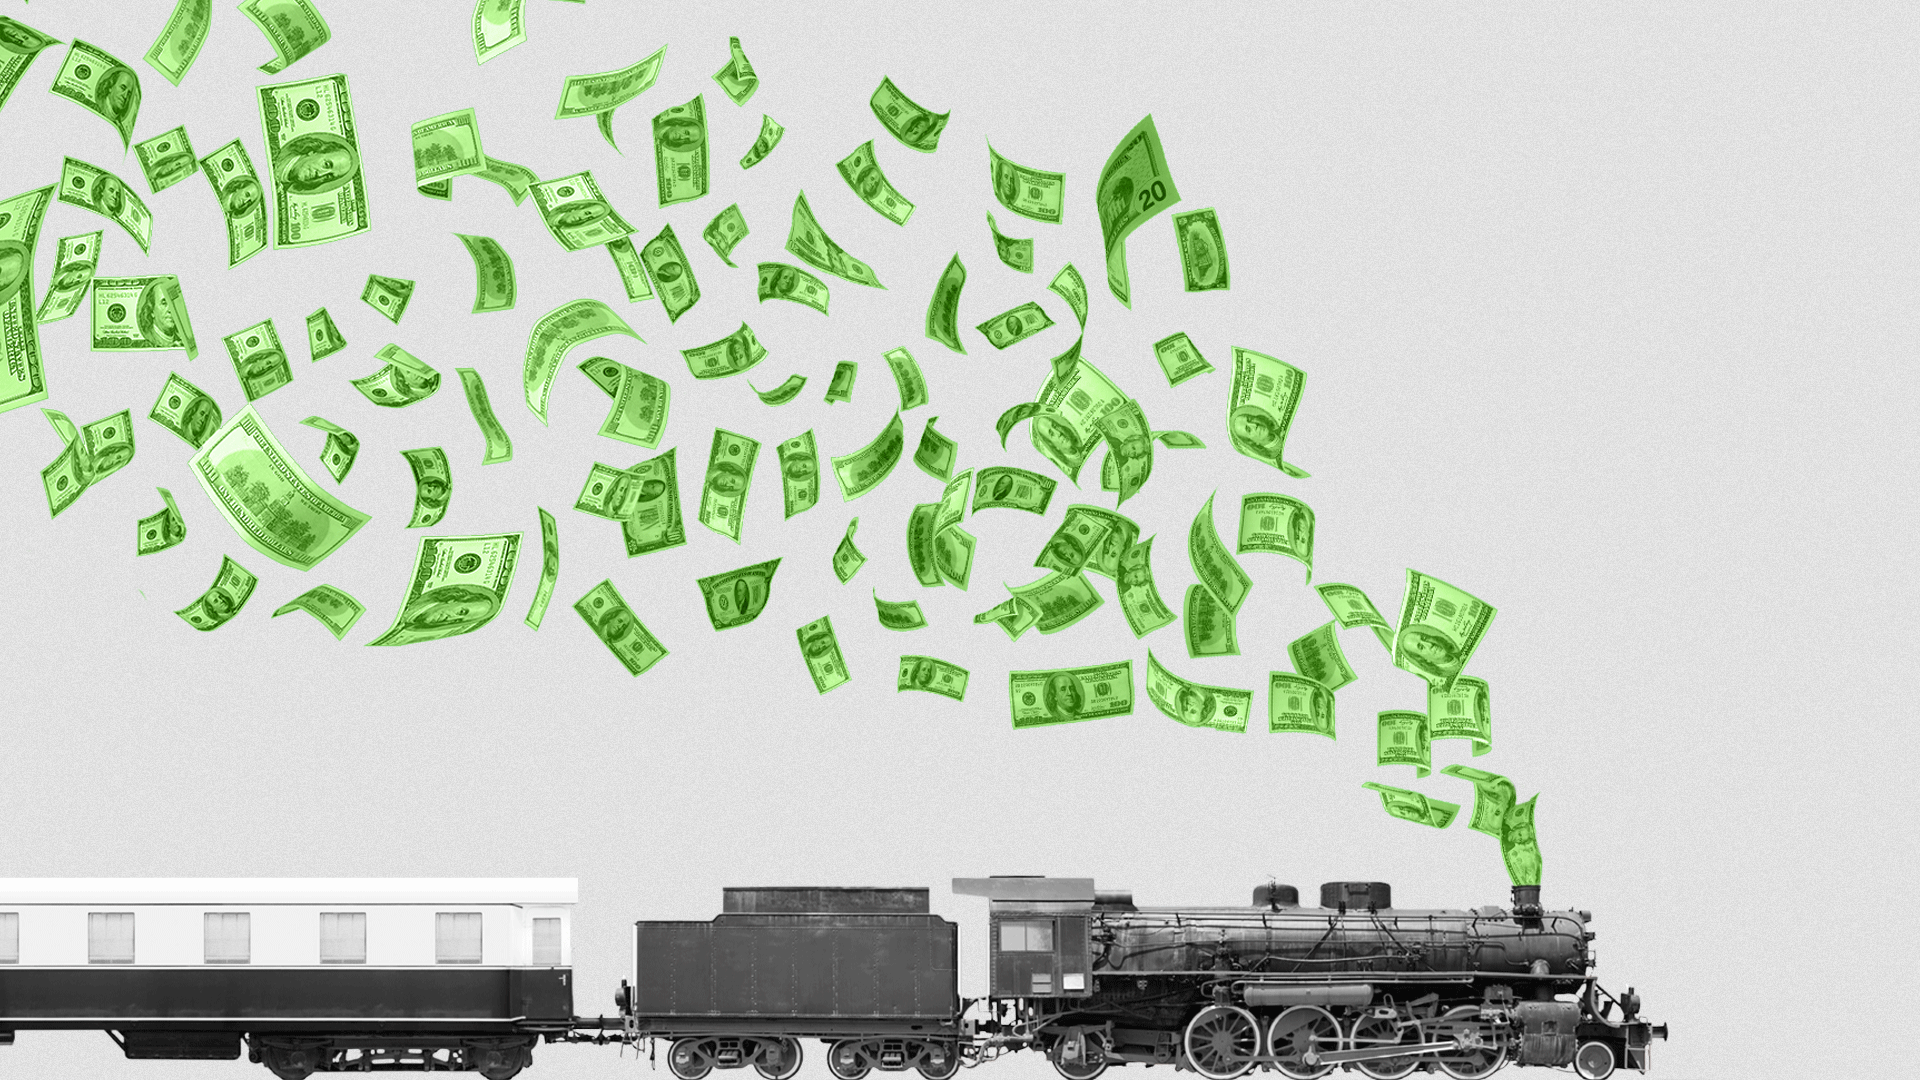 An illustration of A freight train with money coming out of the smoke stack